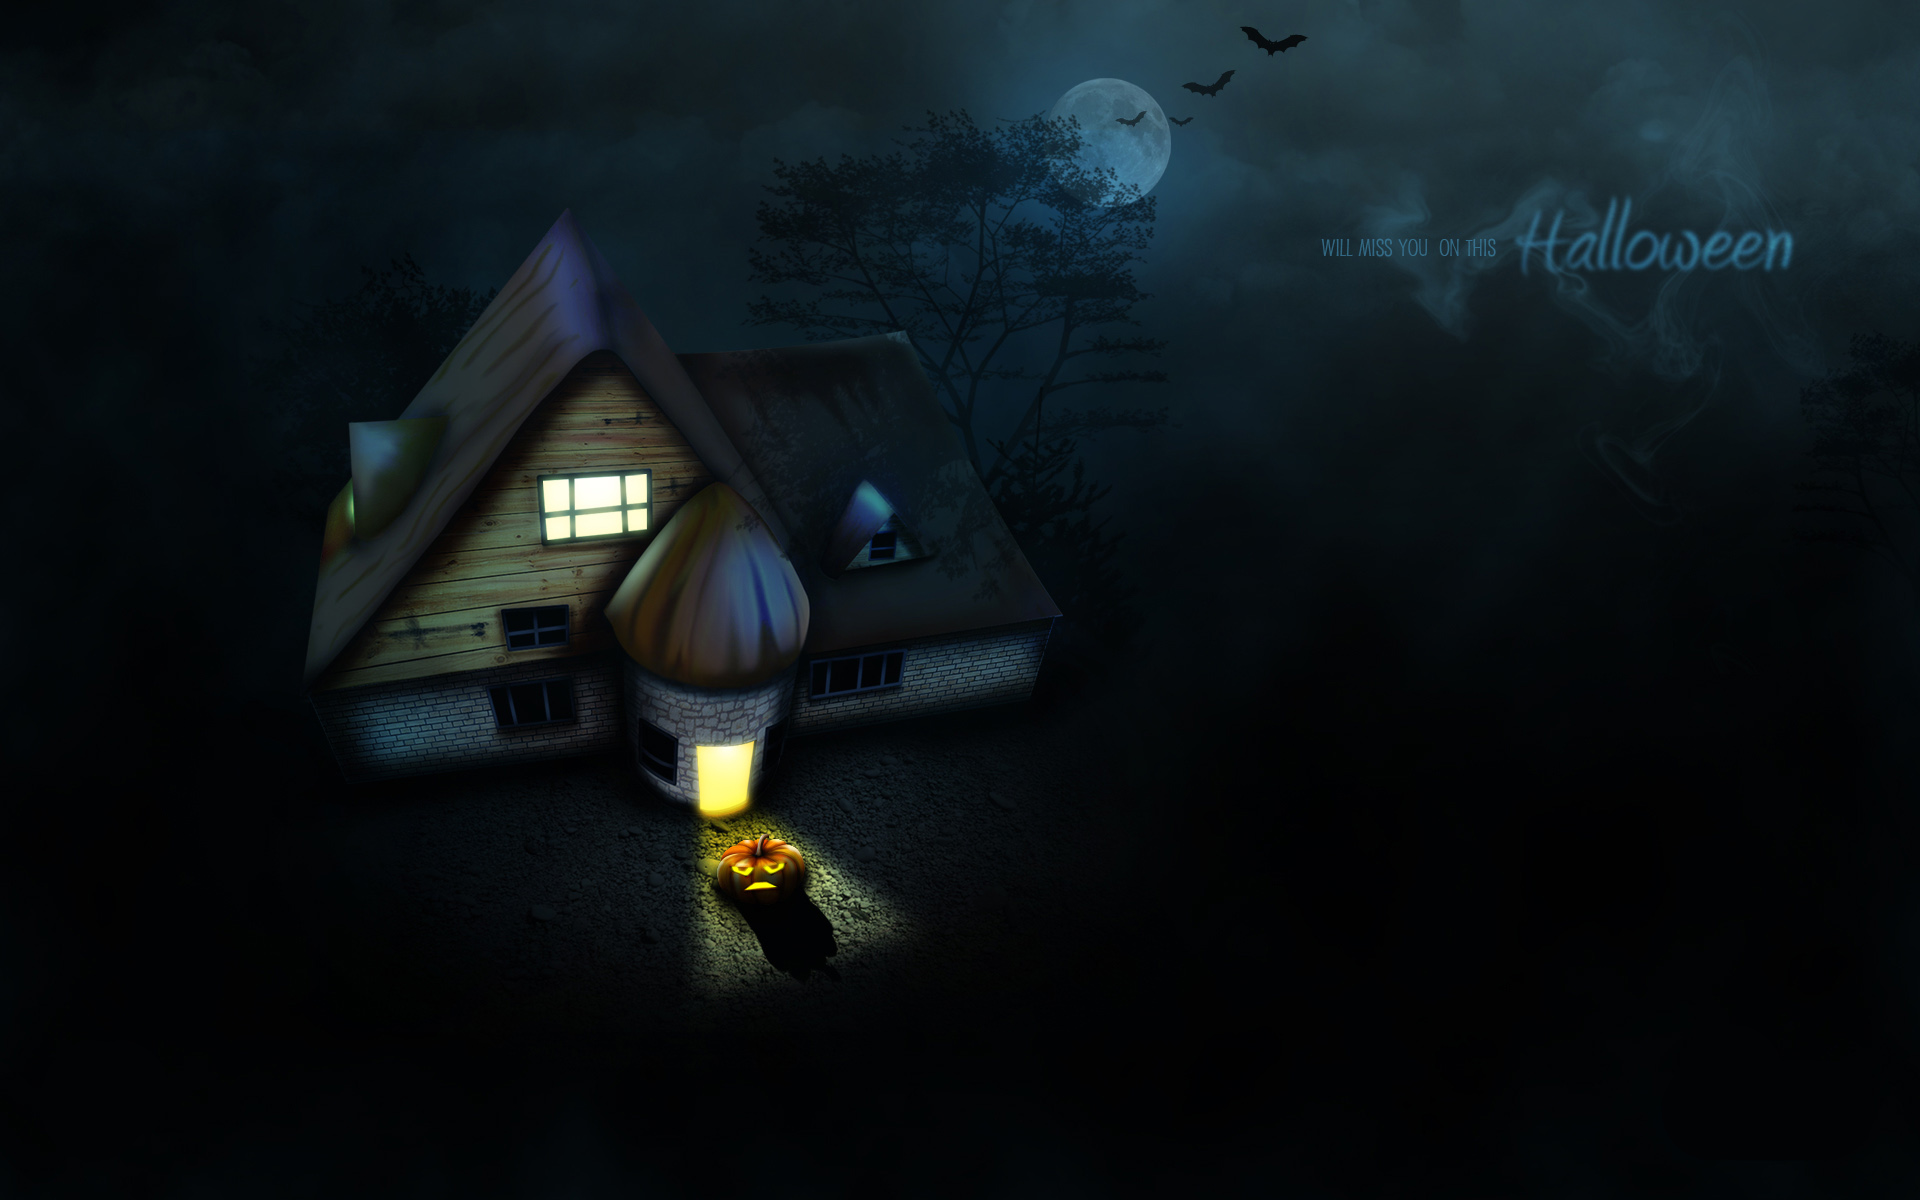 powerpoint templates halloween background wallpaper animated 1920x1200